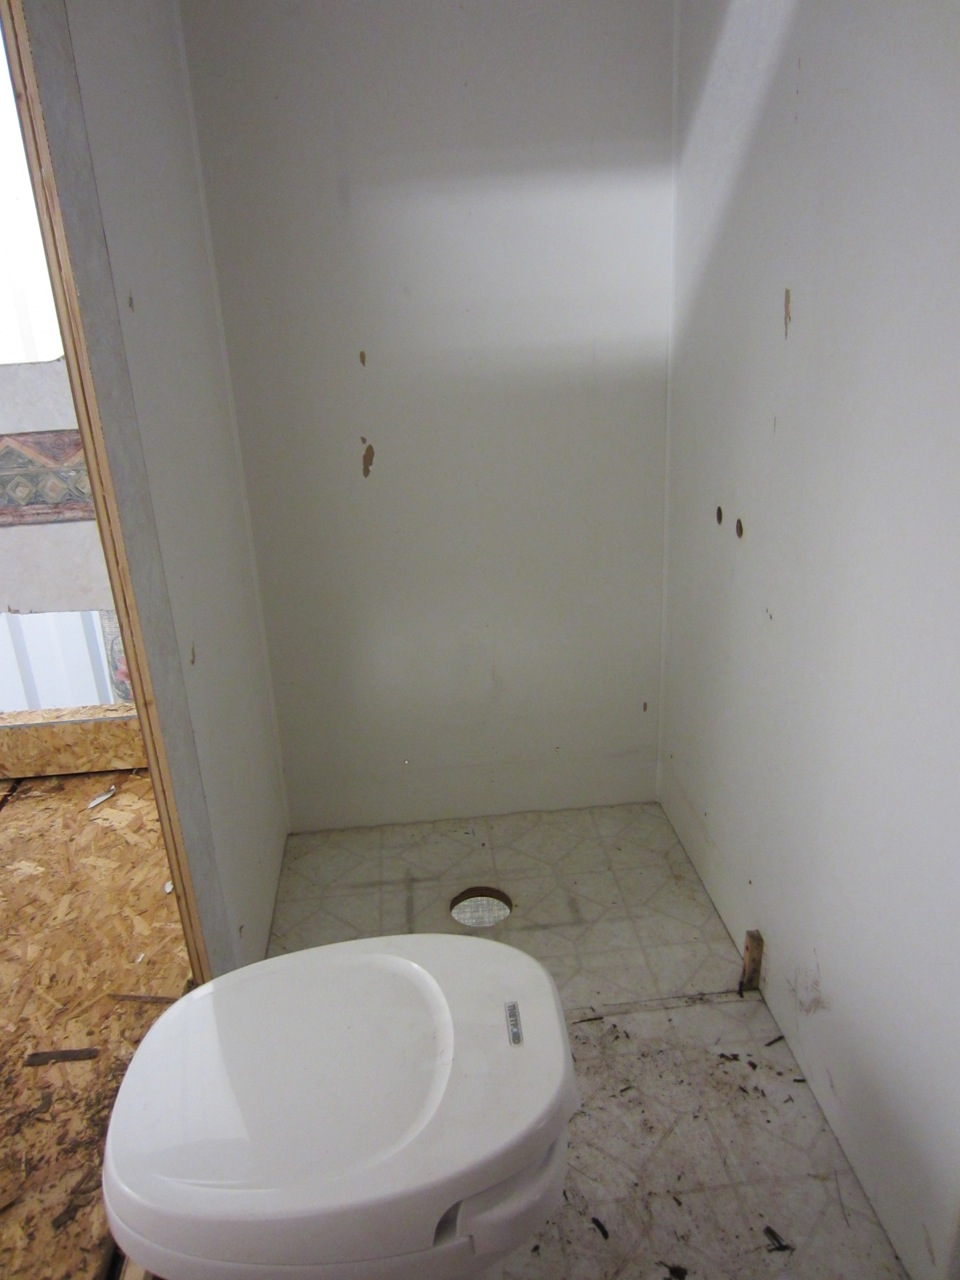 Shower is out too! We're going to put in a corner shower to increase space in the bedroom and in the shower.